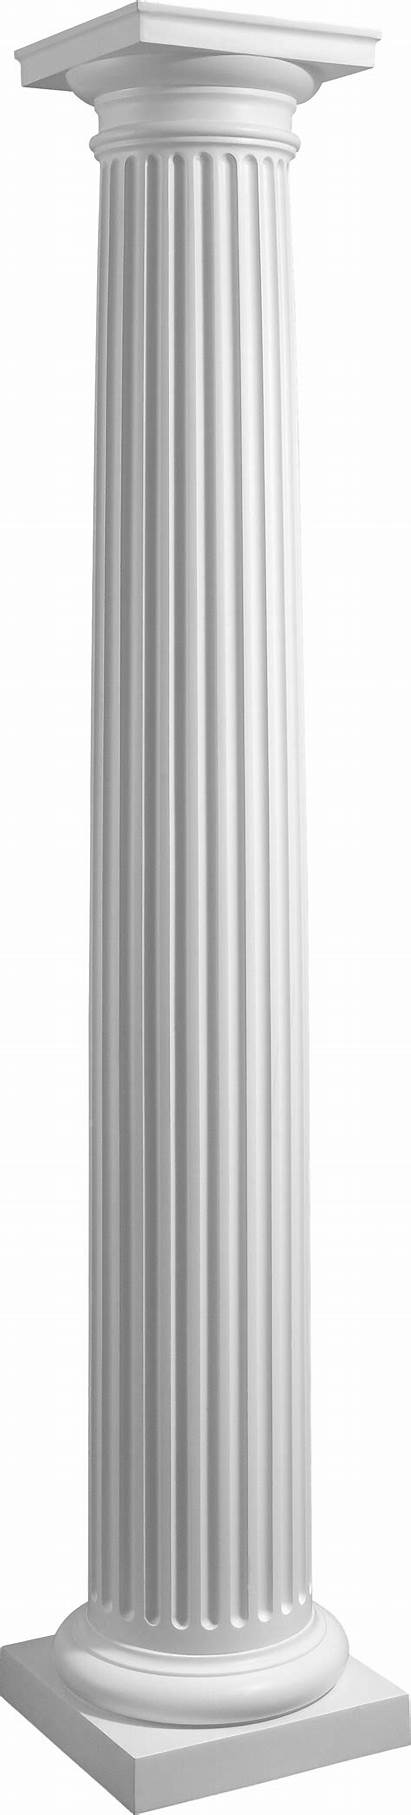 Fluted Column Round Tapered 1101 Brochure